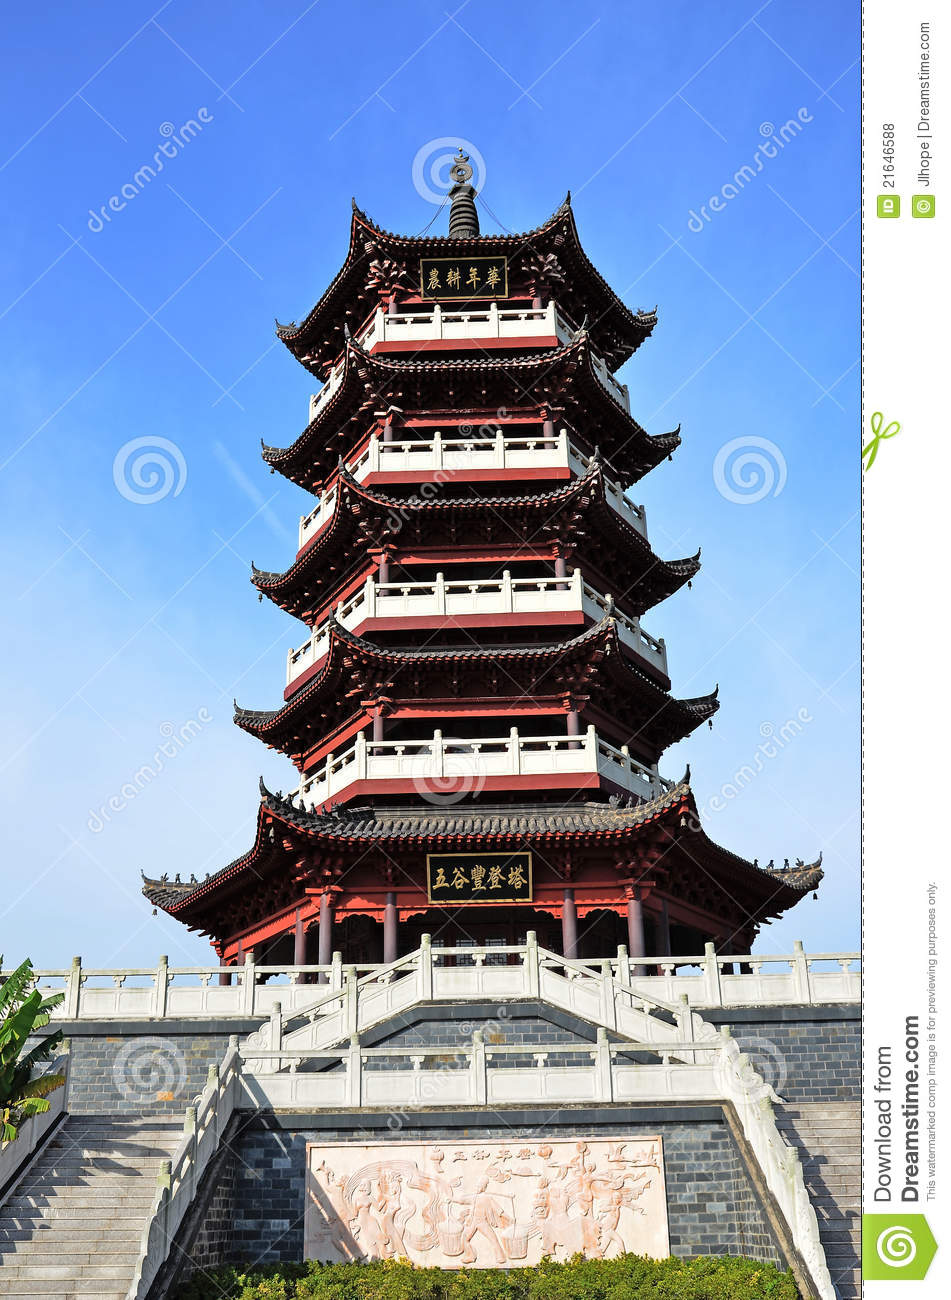 chinese tower royalty free stock photos   image 21646588